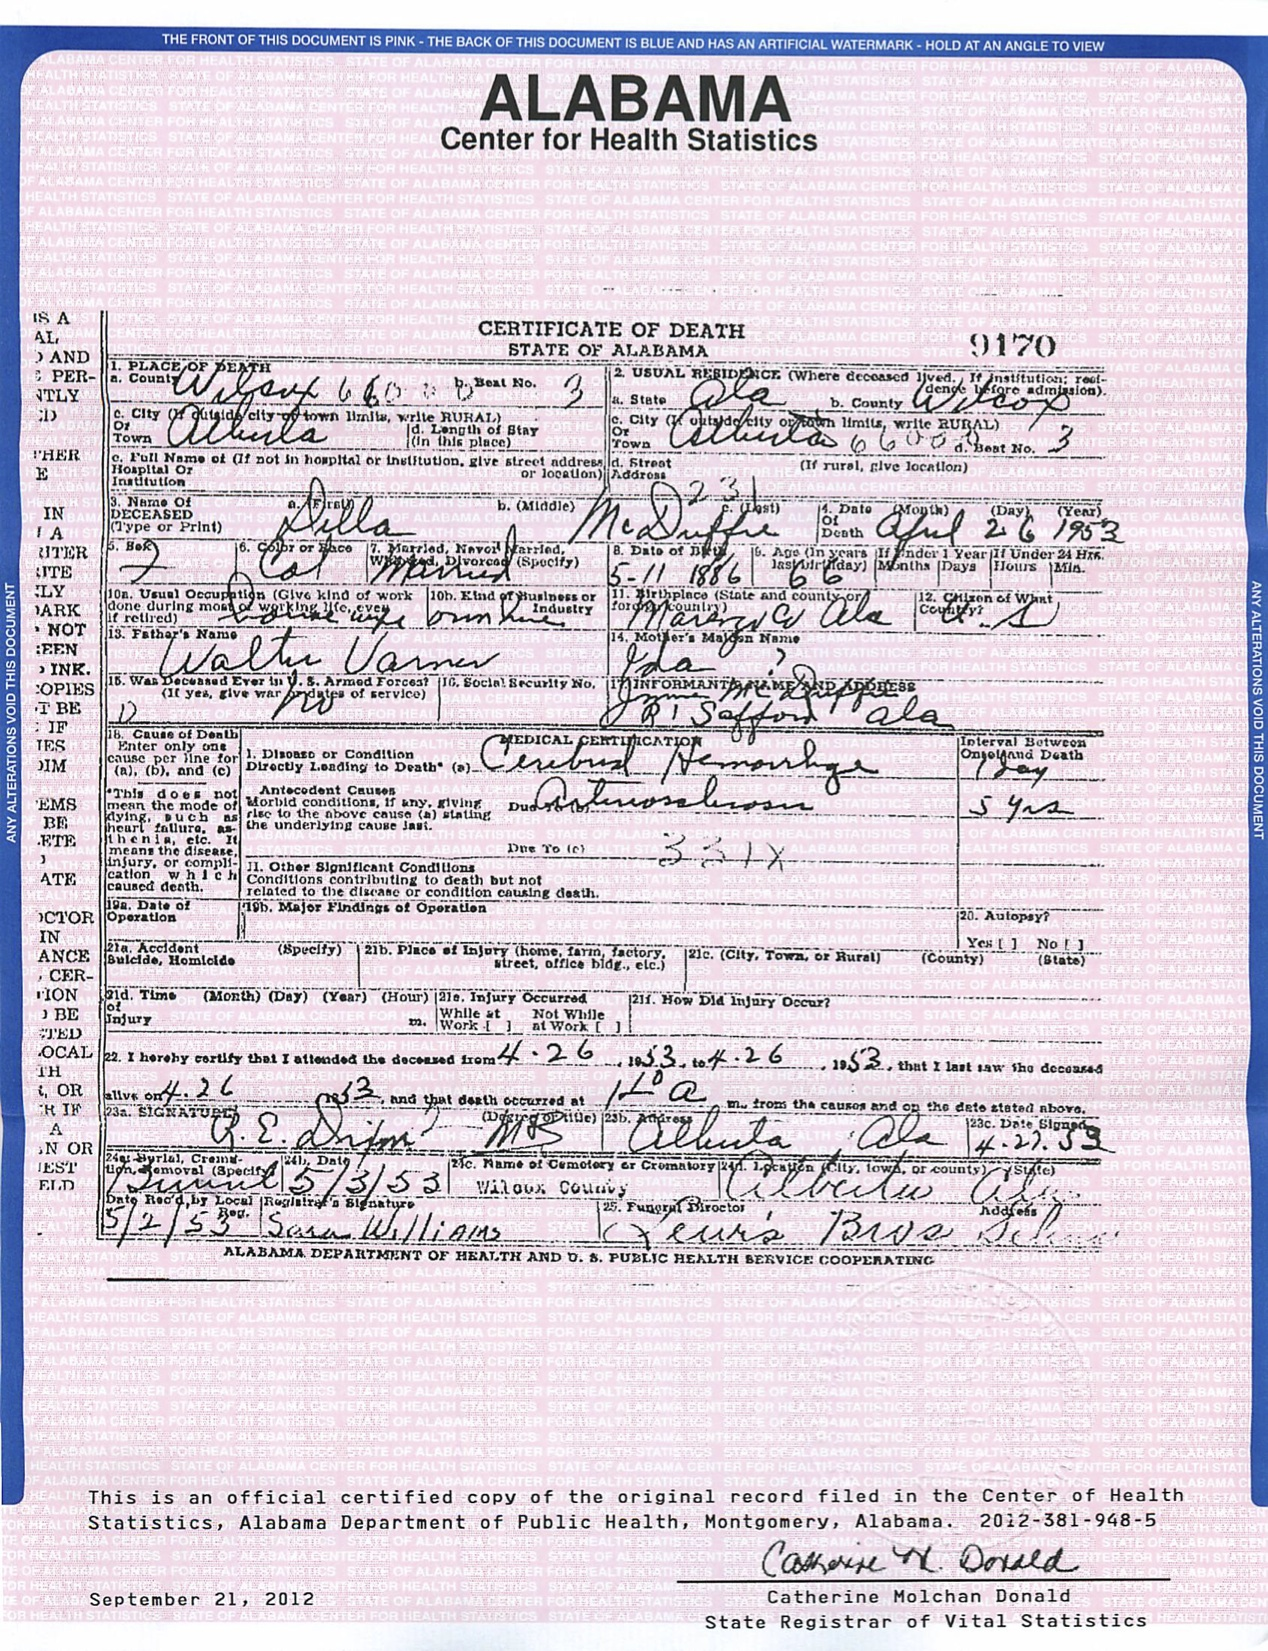 New collection of copy of death certificate business cards and nulawmaps from copy of death certificate image source mapslawlab xflitez Gallery